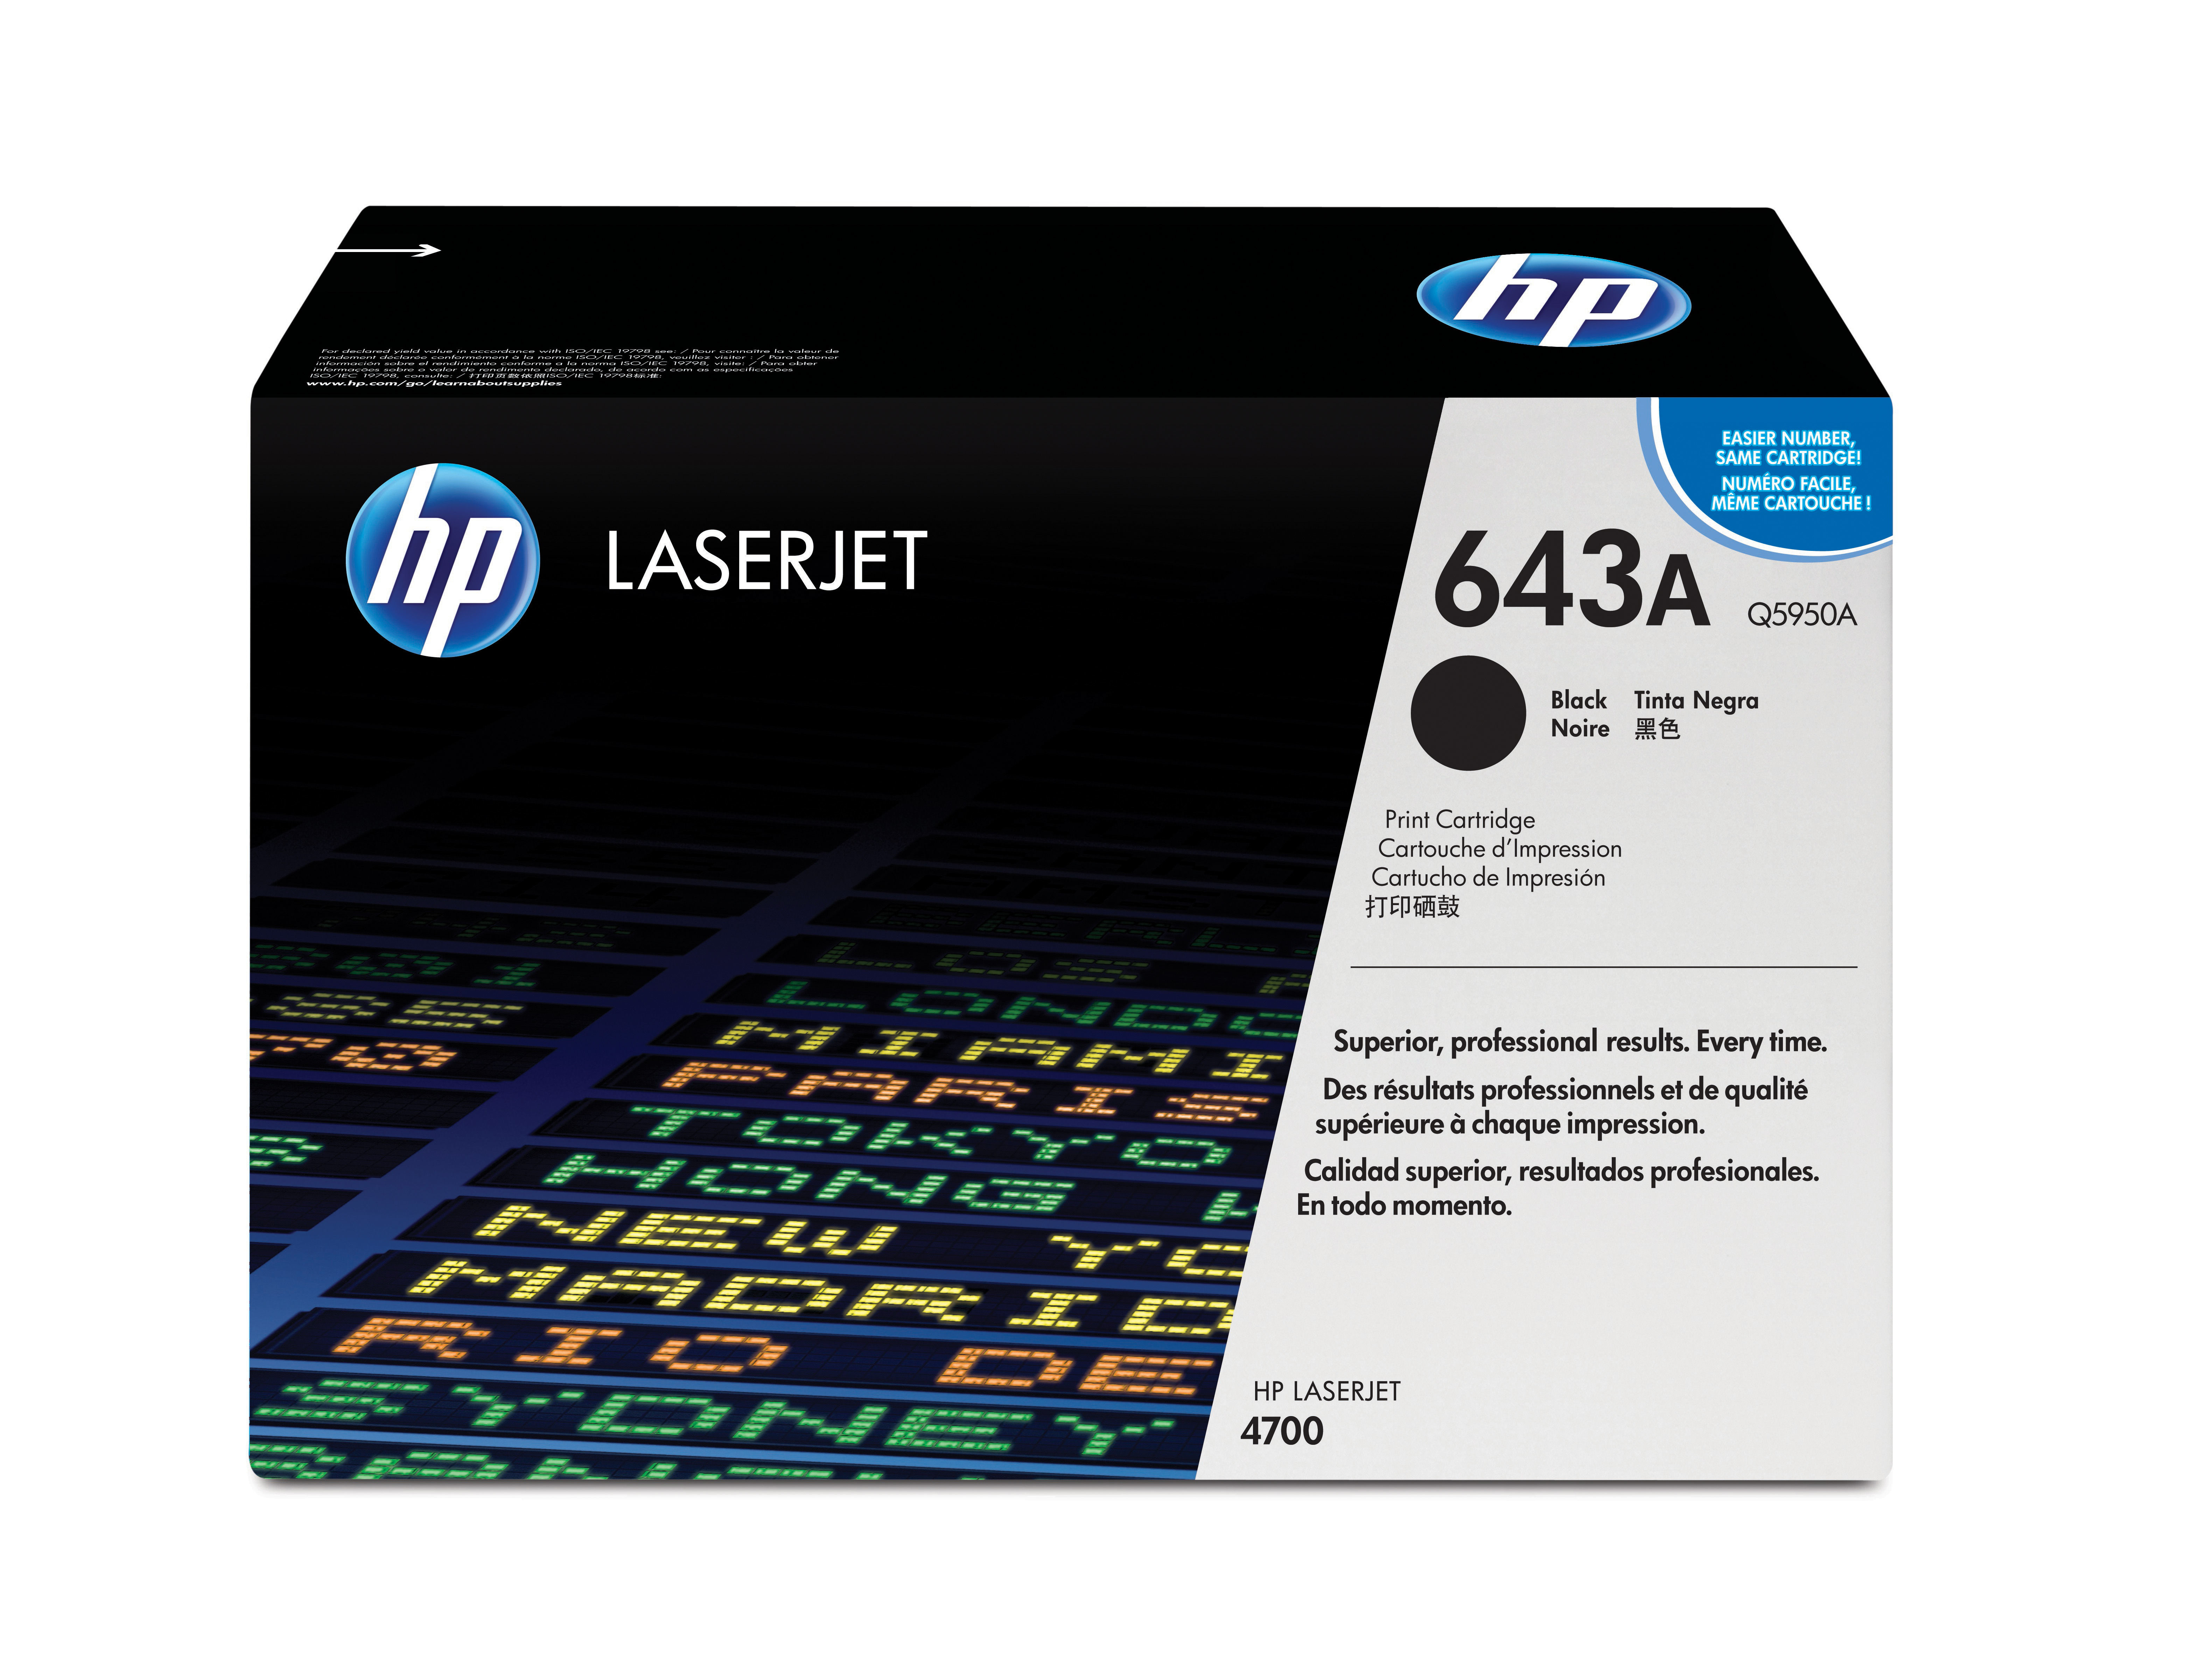 Hpq5950a       Hp 643a Black Laser Toner      4700 4730 Mfp Series                                         - UF01